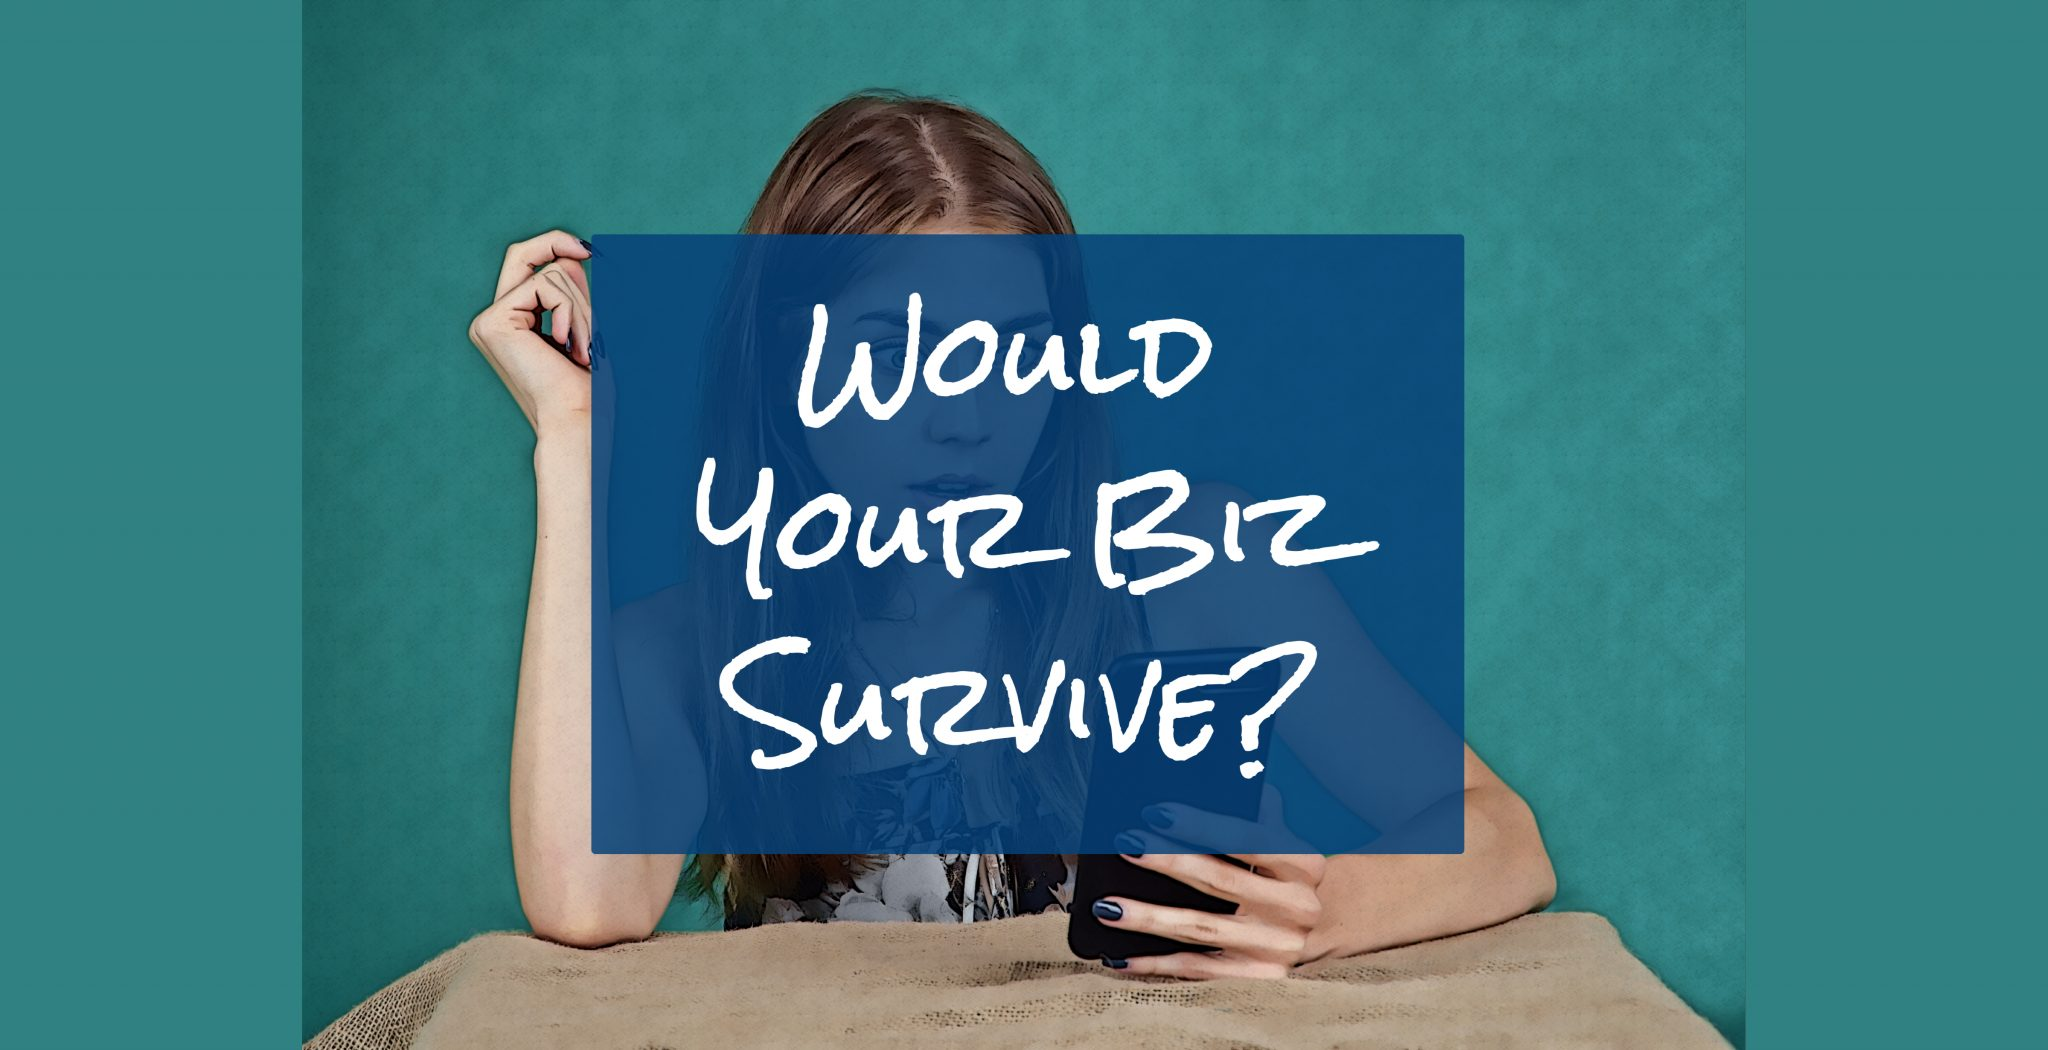 Would your business survive if Social Media disappeared? 6